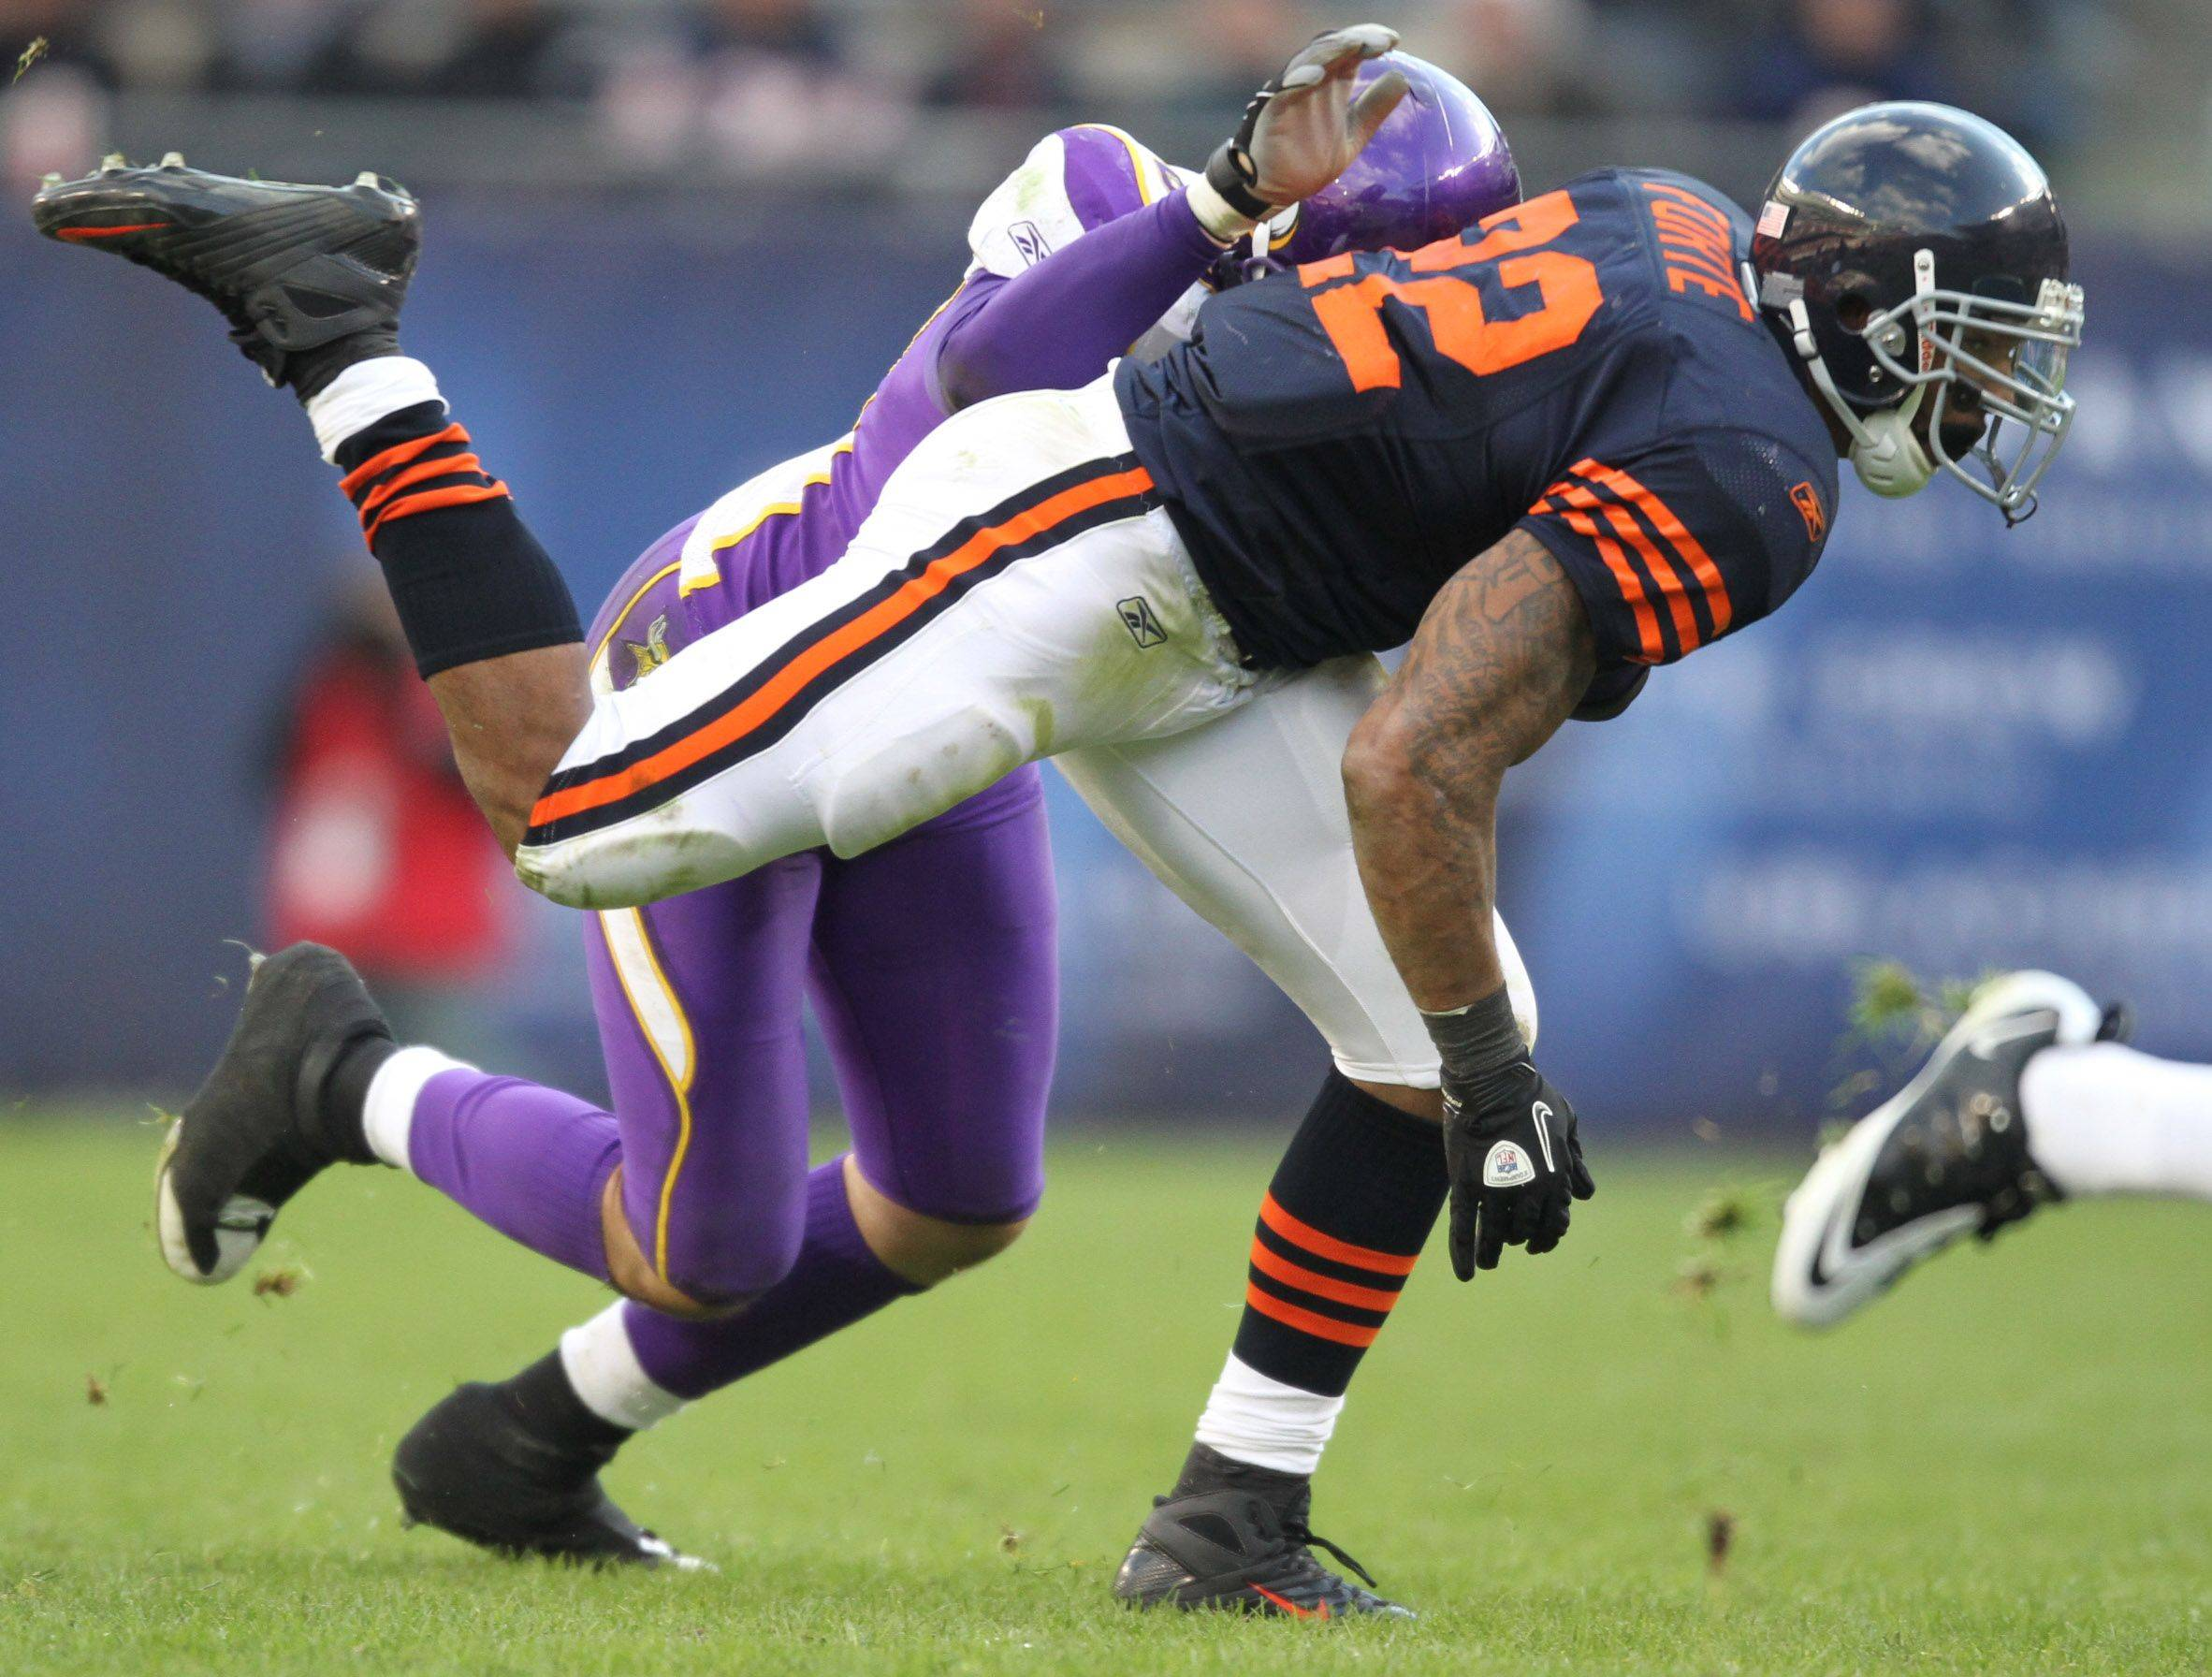 Chicago Bears' Matt Forte runs the ball against Minnesota Vikings in the second half.